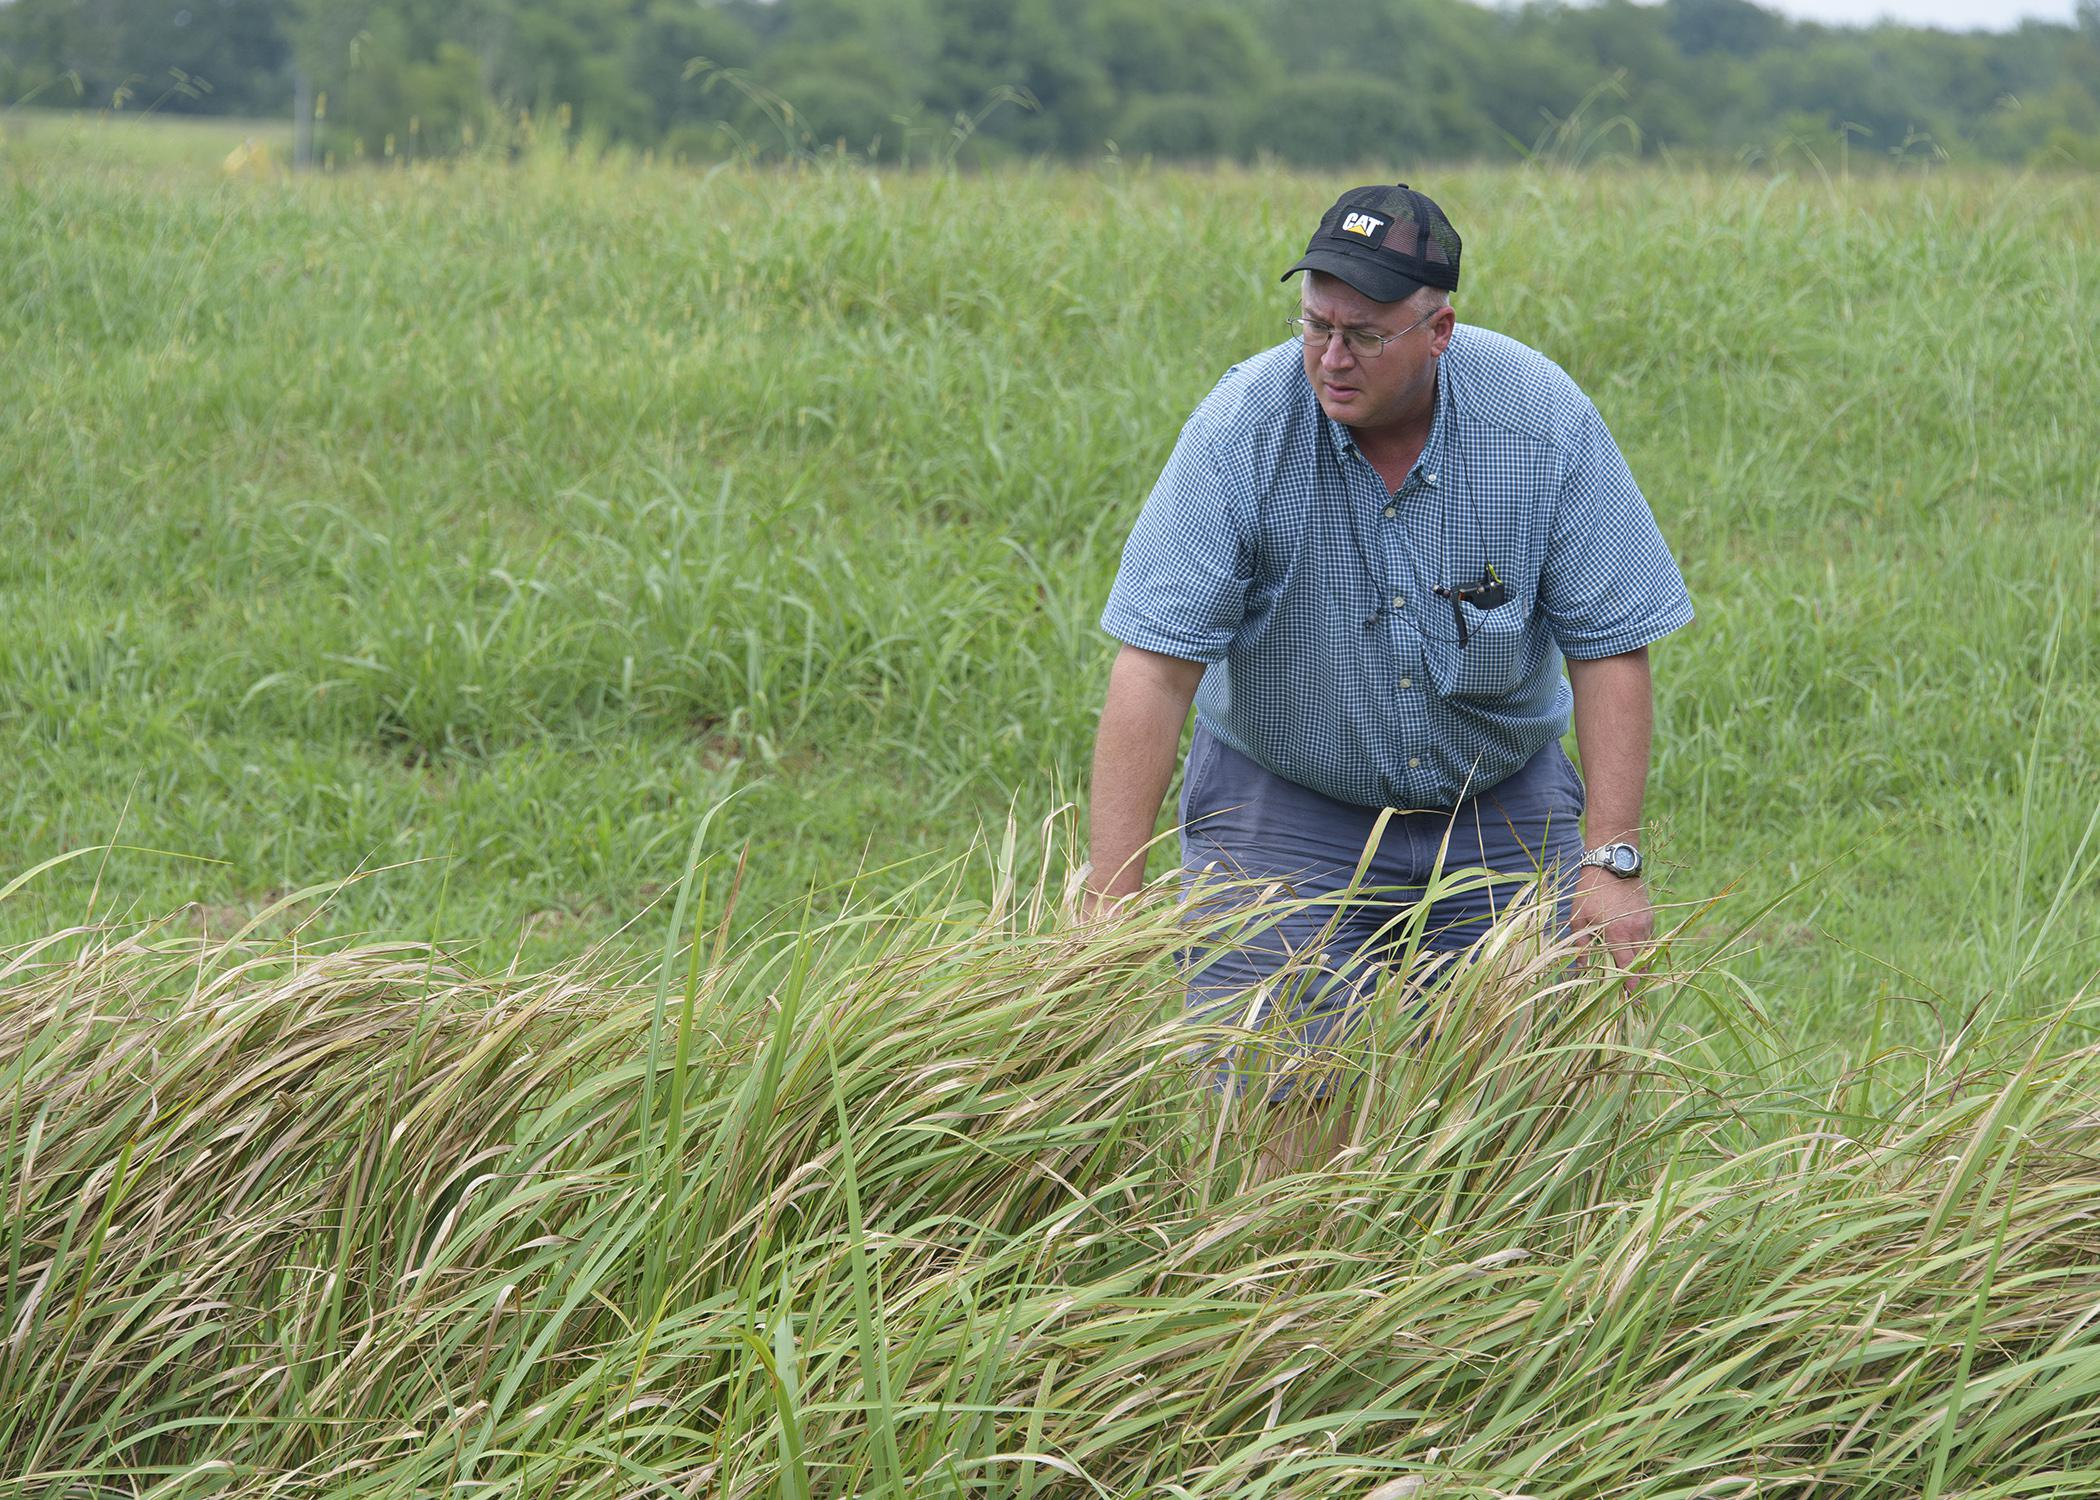 Cogongrass is a hardy, fast-growing invasive weed that is spreading across the Southeast. Mississippi State University Extension Service weed scientist John Byrd said it has no value as forage and displaces native ecosystems. (Photo by MSU Ag Communications/Kevin Hudson)